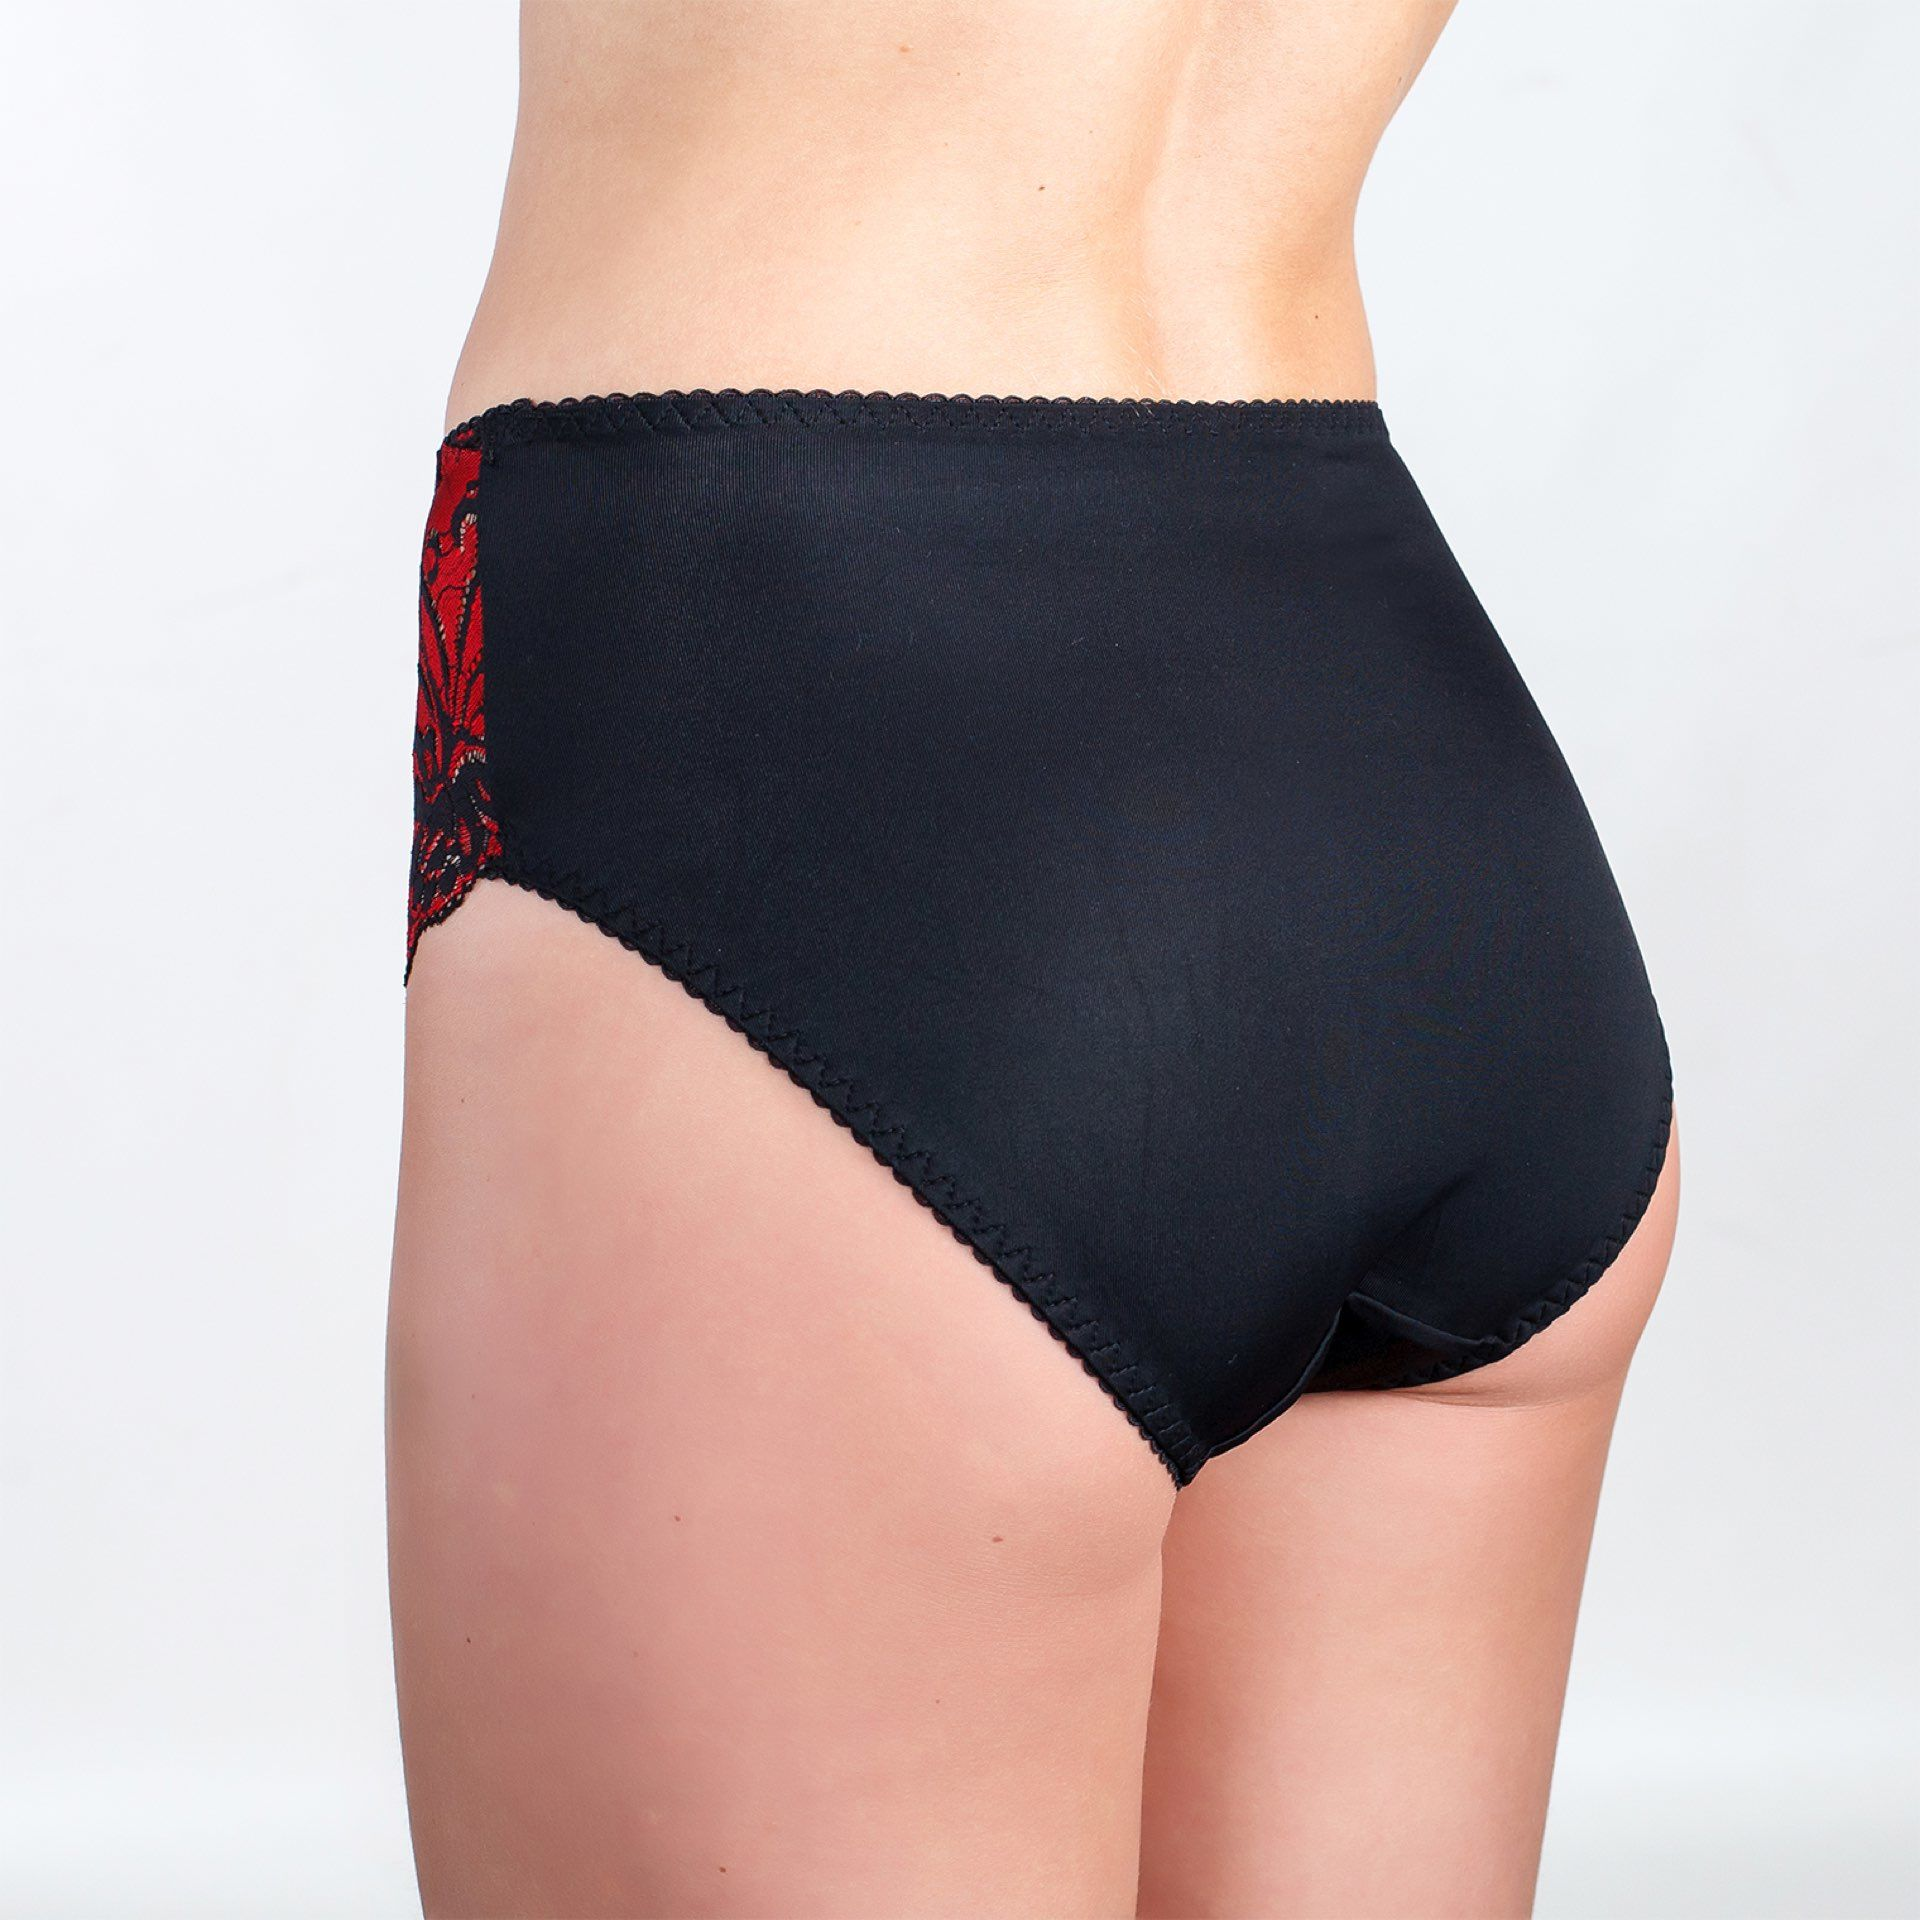 ms pomelo brief du jour carmen 171 focus image back